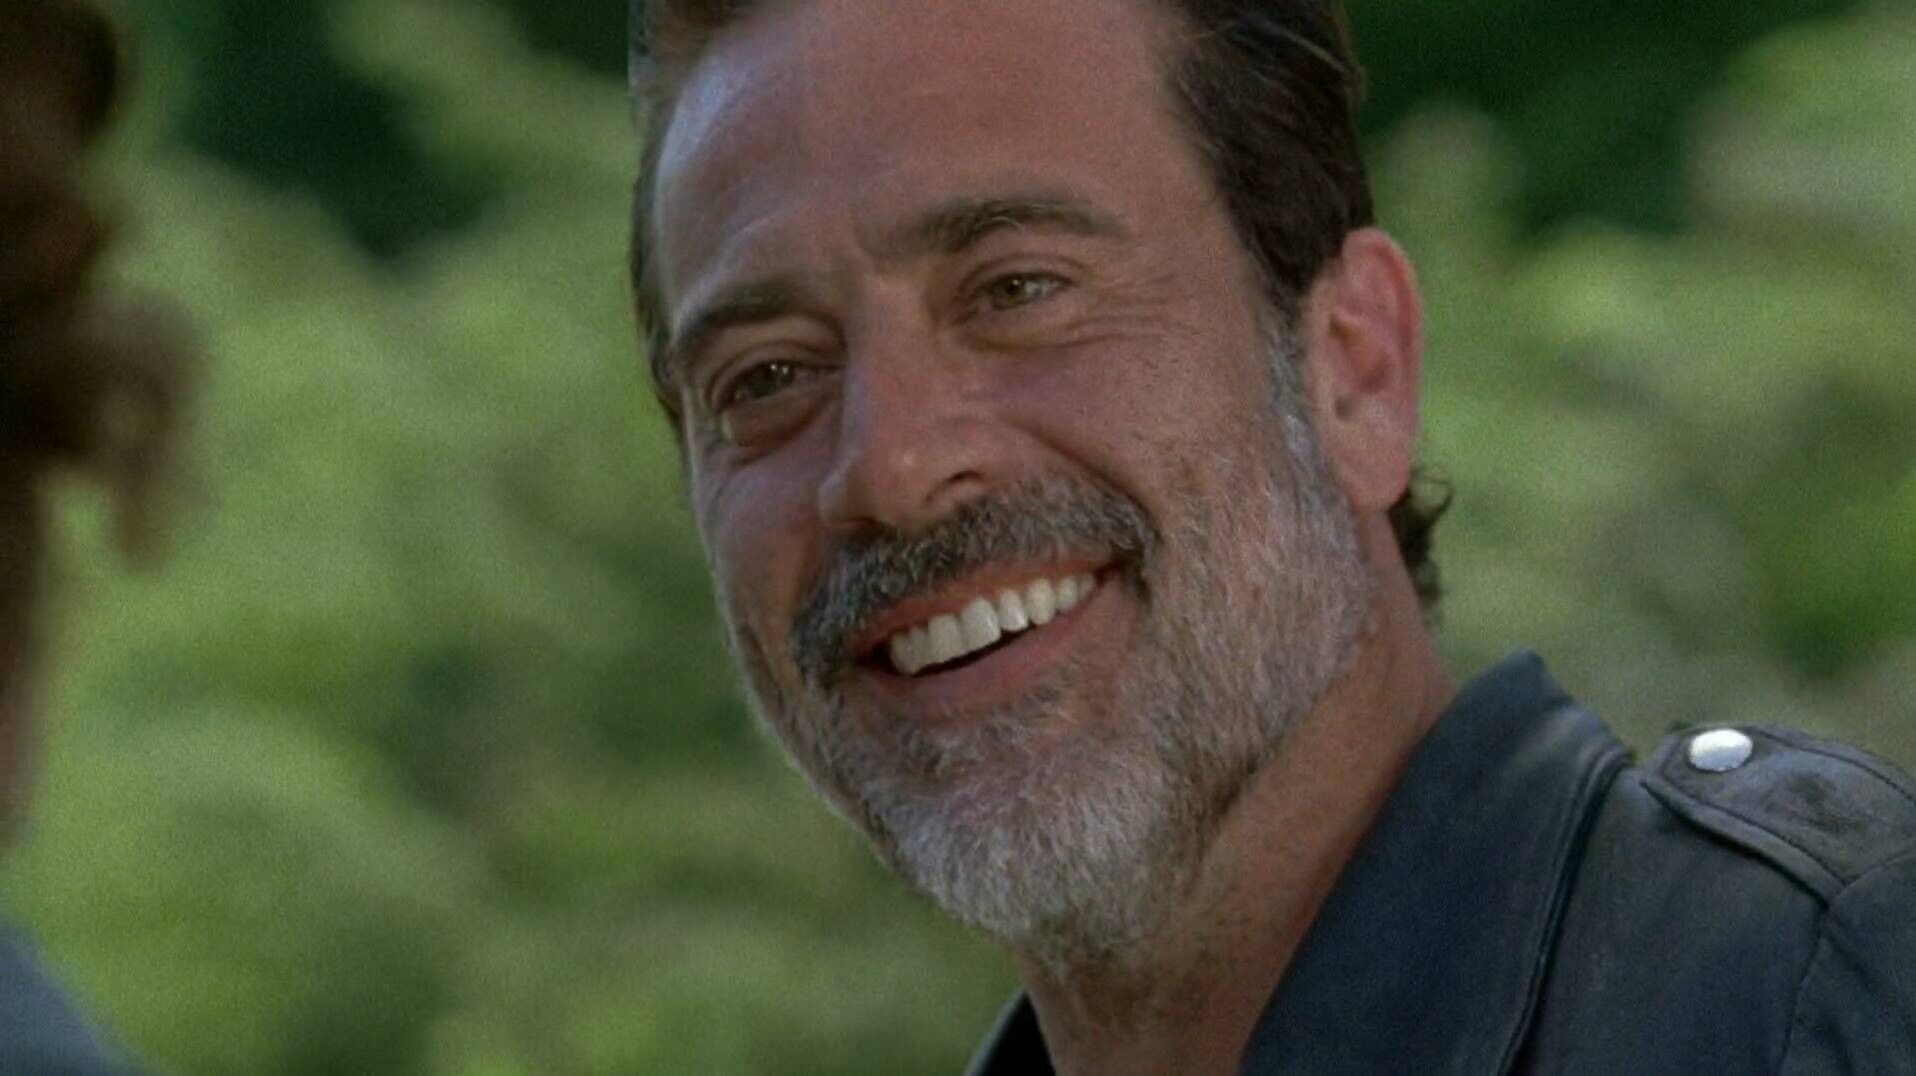 The Walking Dead Negan And Denny Are Very Different People